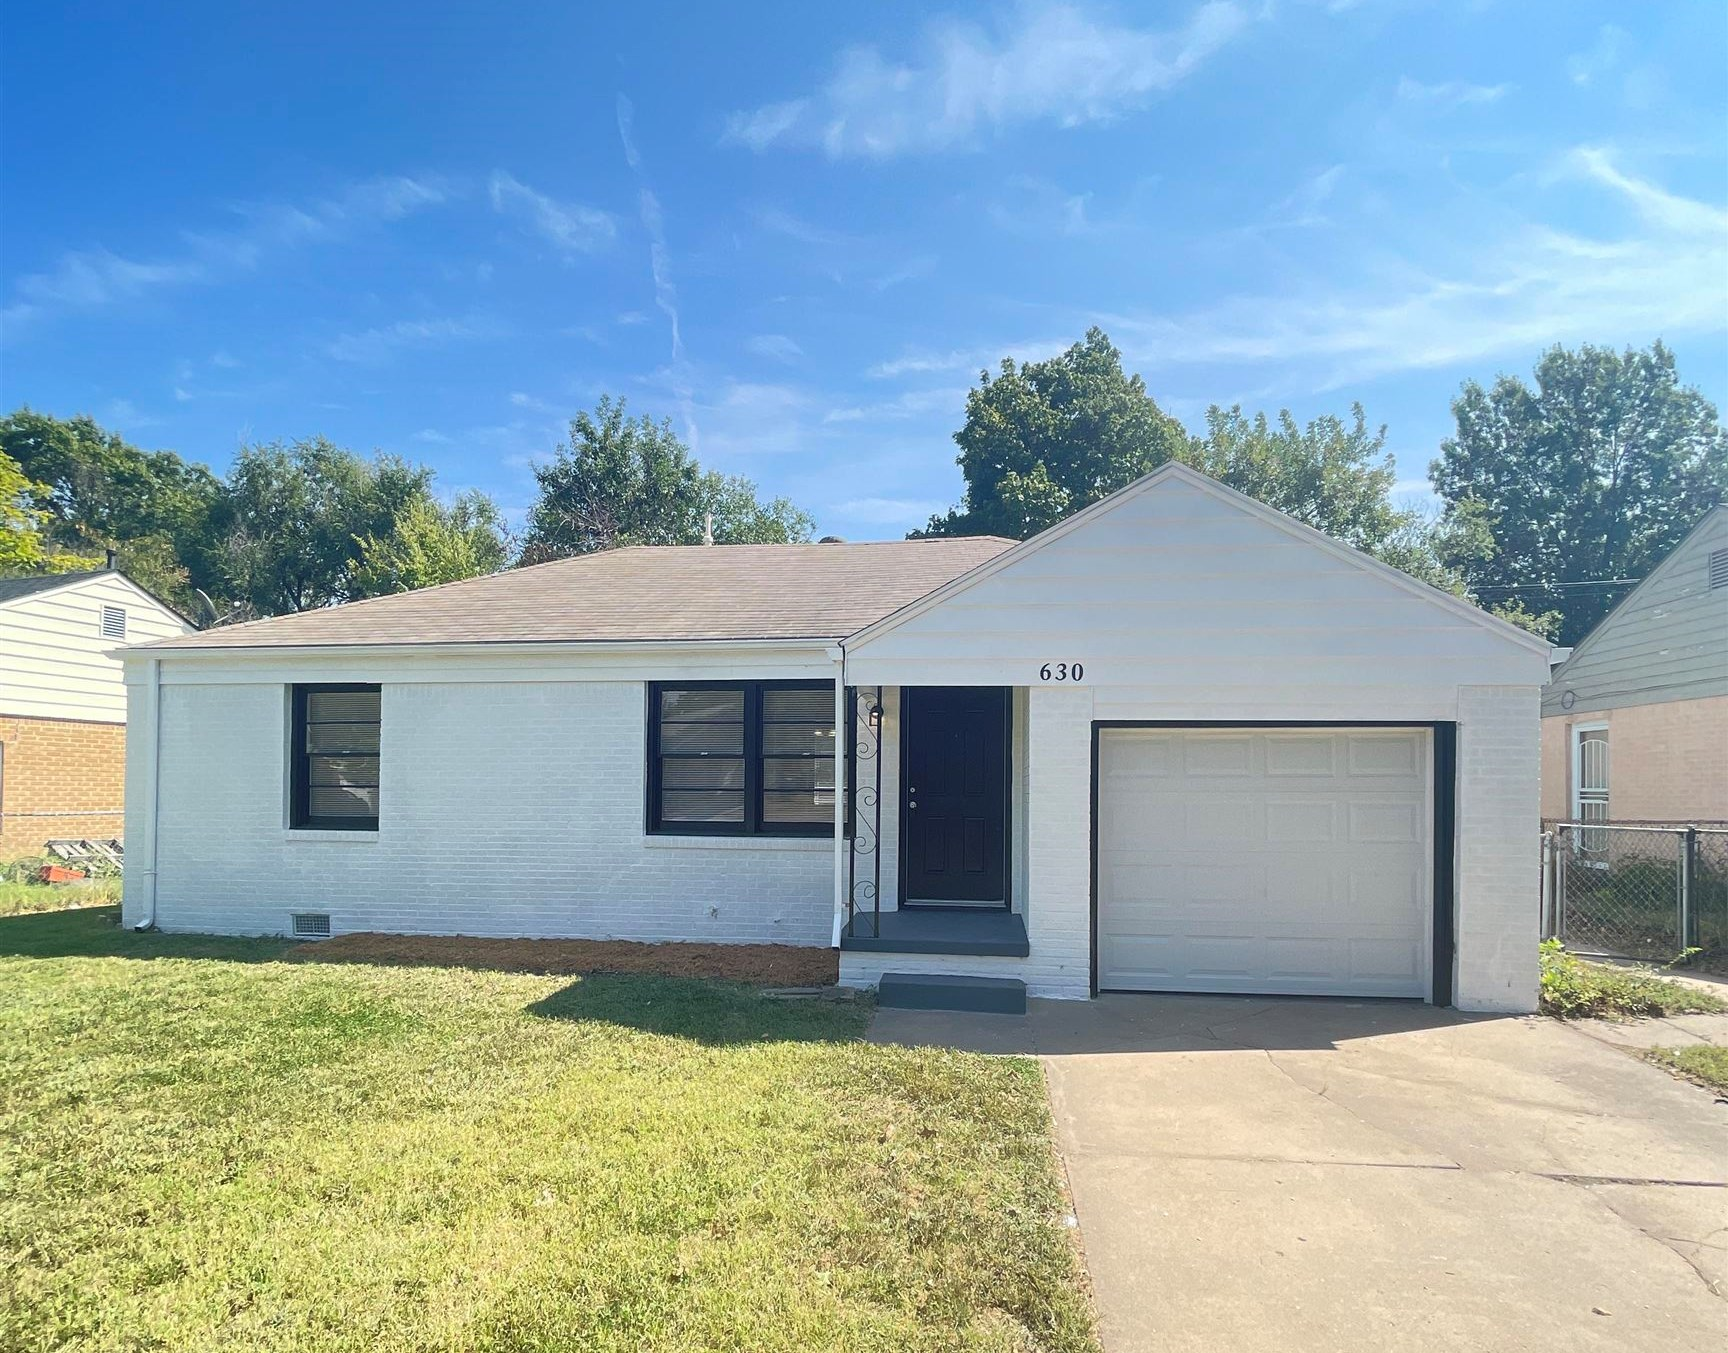 Newly renovated home in desirable East Wichita. Featuring a tile bathroom, new flooring, fresh paint